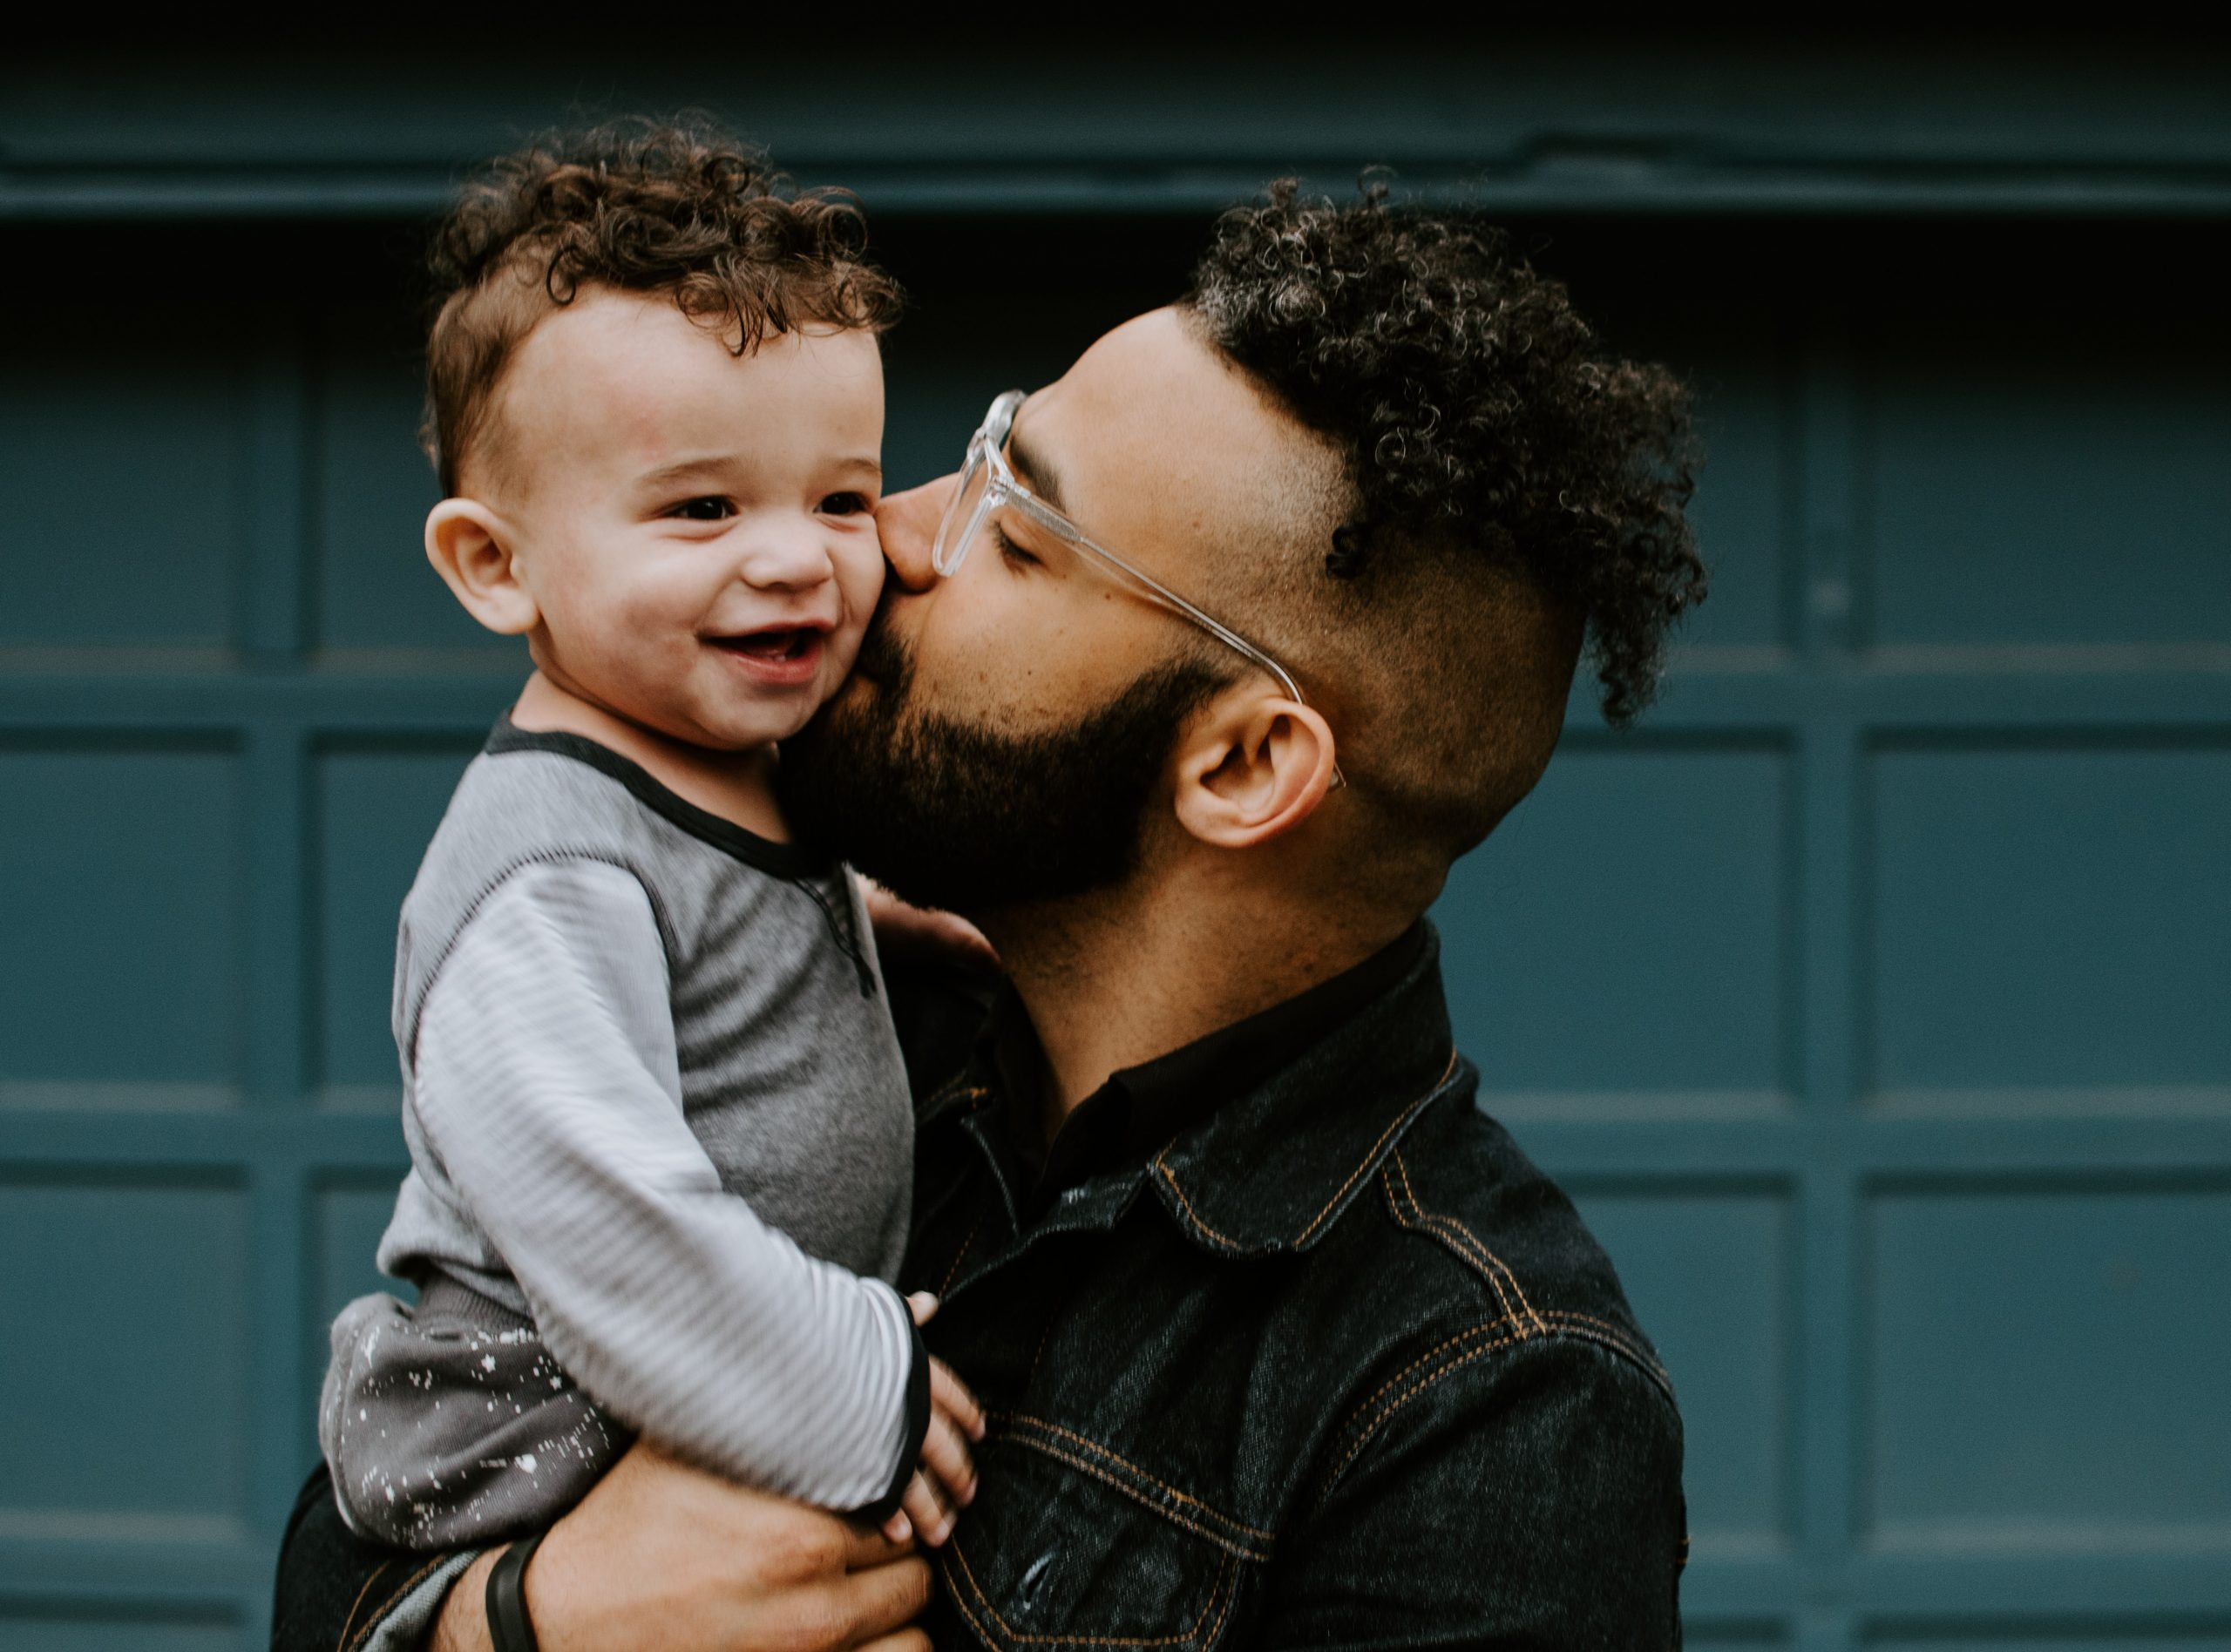 Image shows a dark, curly-haired man in his 20s or 30s holding and kissing a toddler with similar physical features and curly, dark hair, while the toddler smiles.